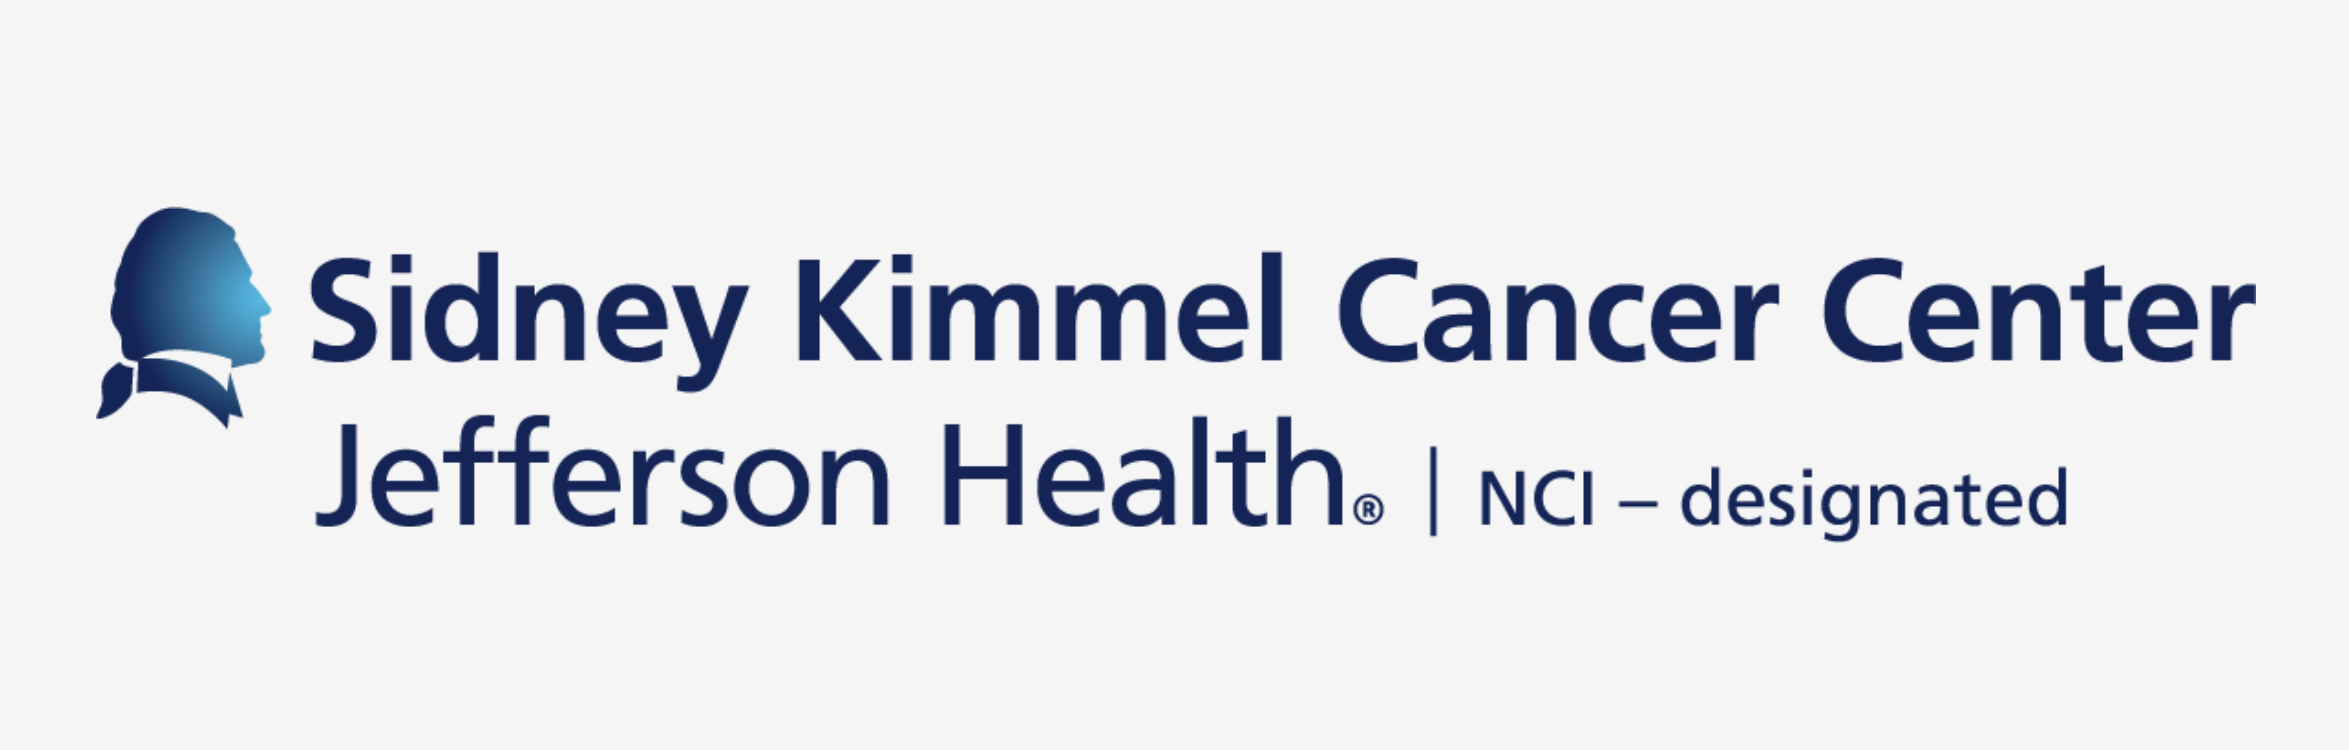 Sidney Kimmel Cancer Center Thomas Jefferson University